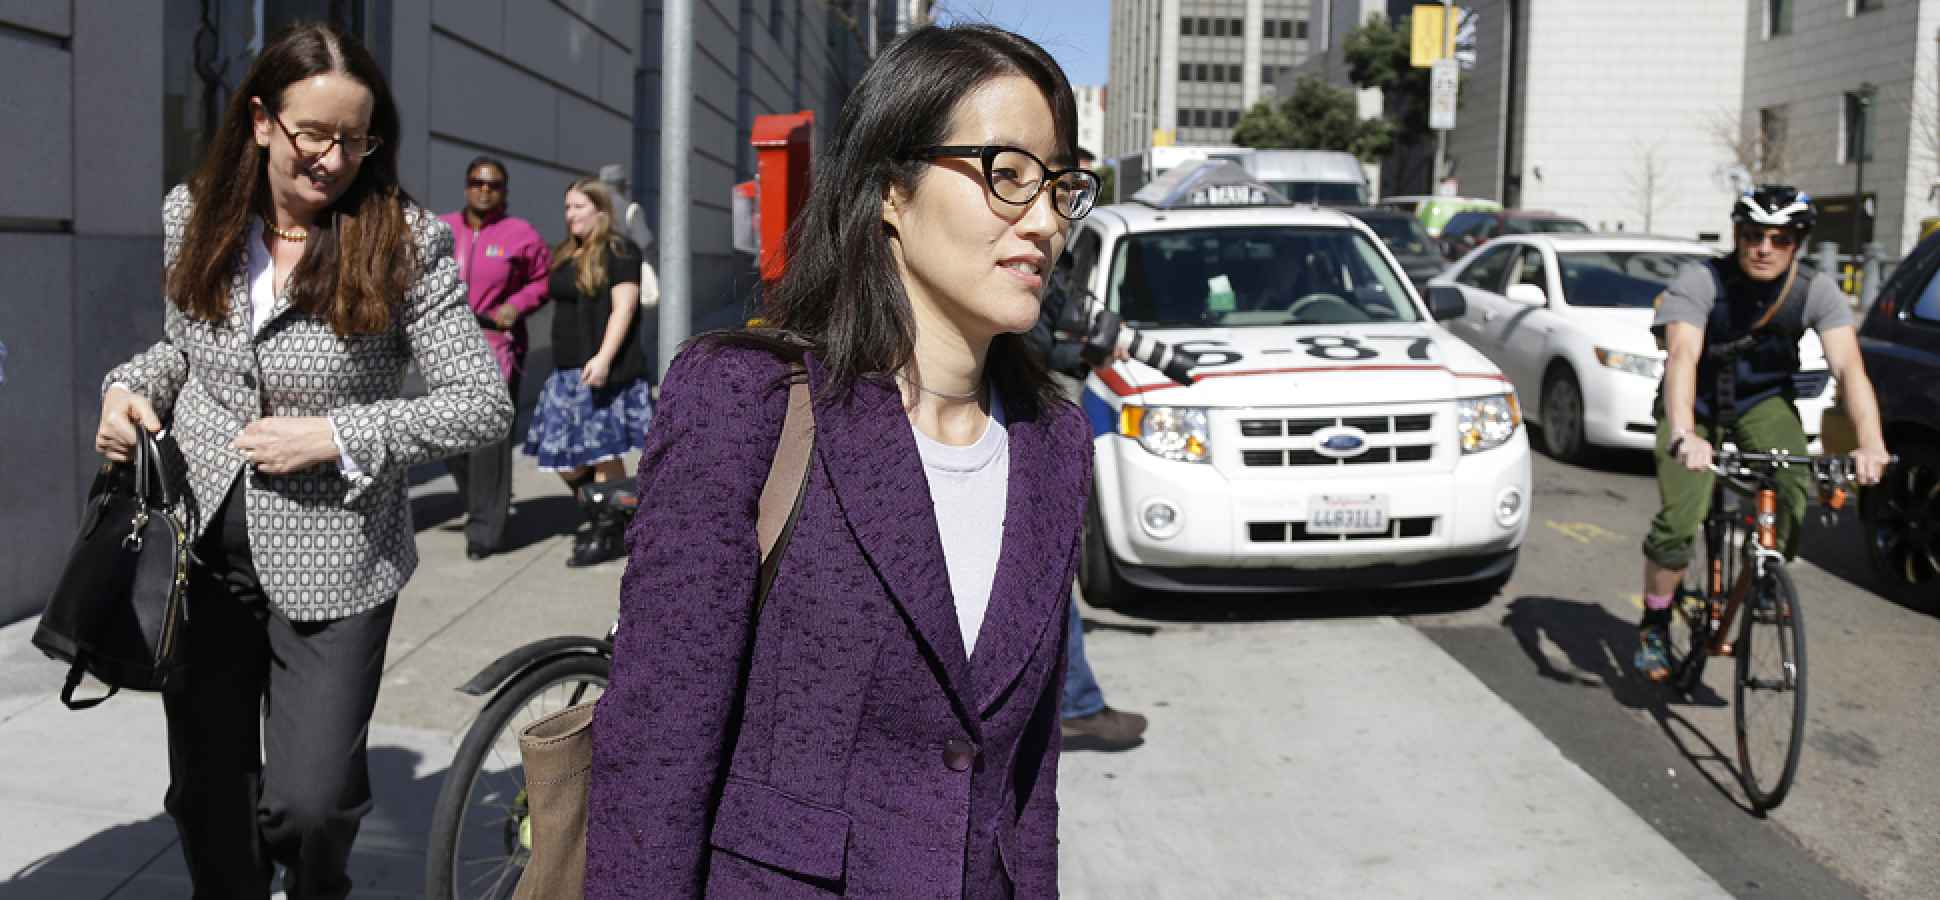 Silicon Valley Gender Discrimination Suit Goes to Jury